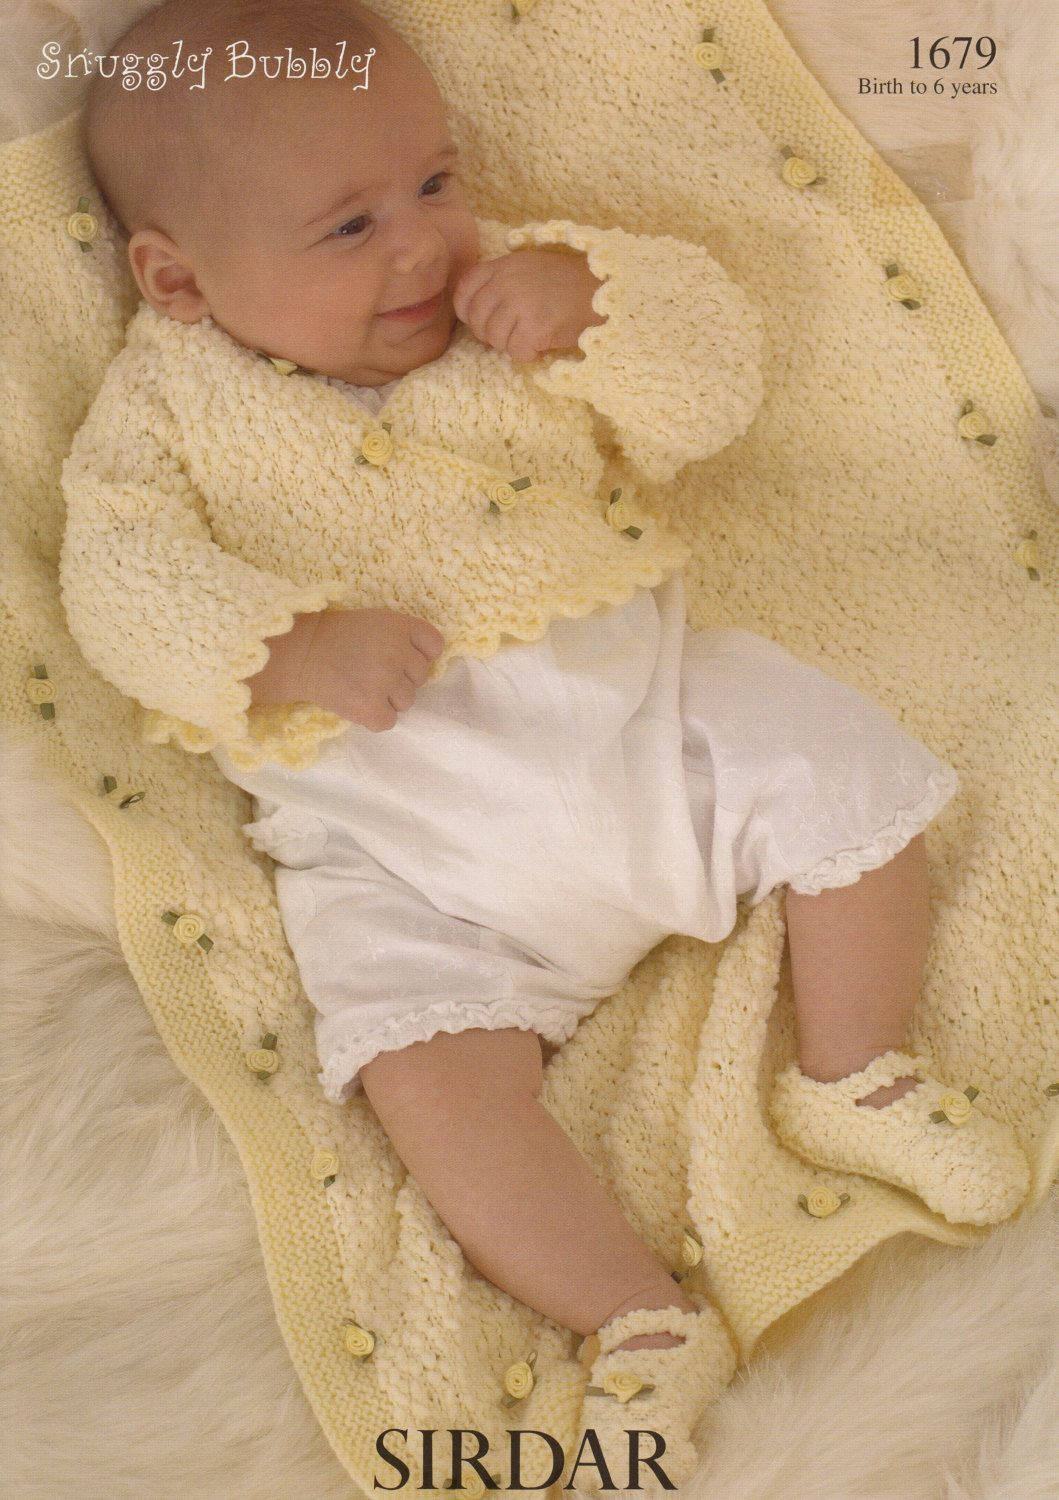 Baby cardigan blanket shoes knitting pattern sirdar snuggly baby cardigan blanket shoes knitting pattern sirdar snuggly bubbly 1679 knitting pattern bankloansurffo Image collections